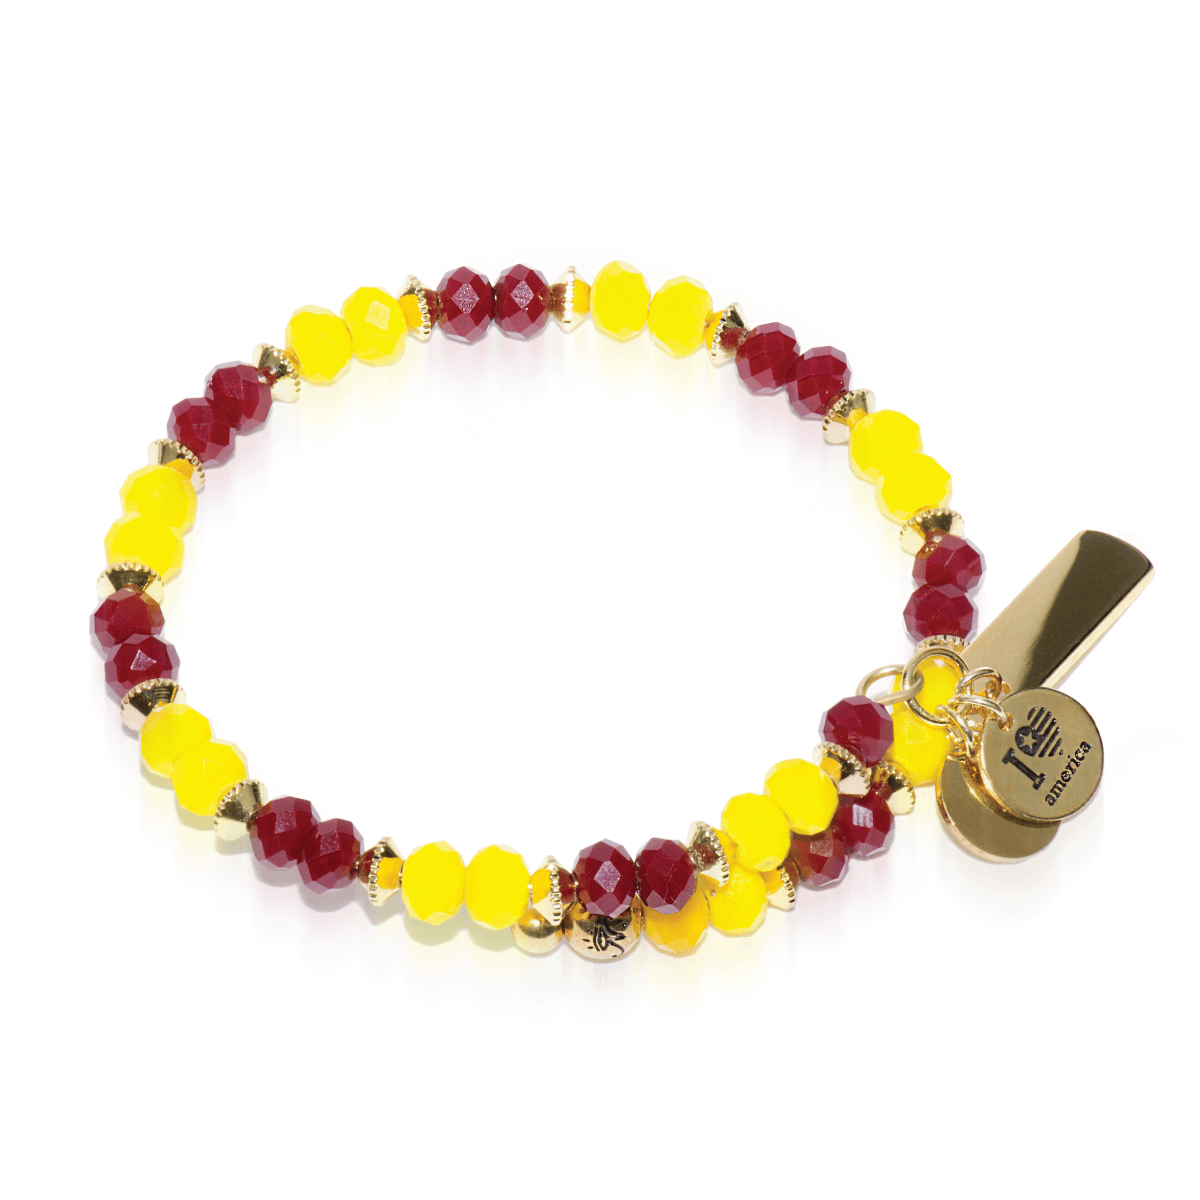 Gold, Red & Yellow Crystal Bangle - Red & Yellow glass crystal with gold finished Laurelian stainless steel bar. Engraving options available. See more at: http://www.josephnogucci.com/products/gold-red-yellow-crystal-bangle-bracelet